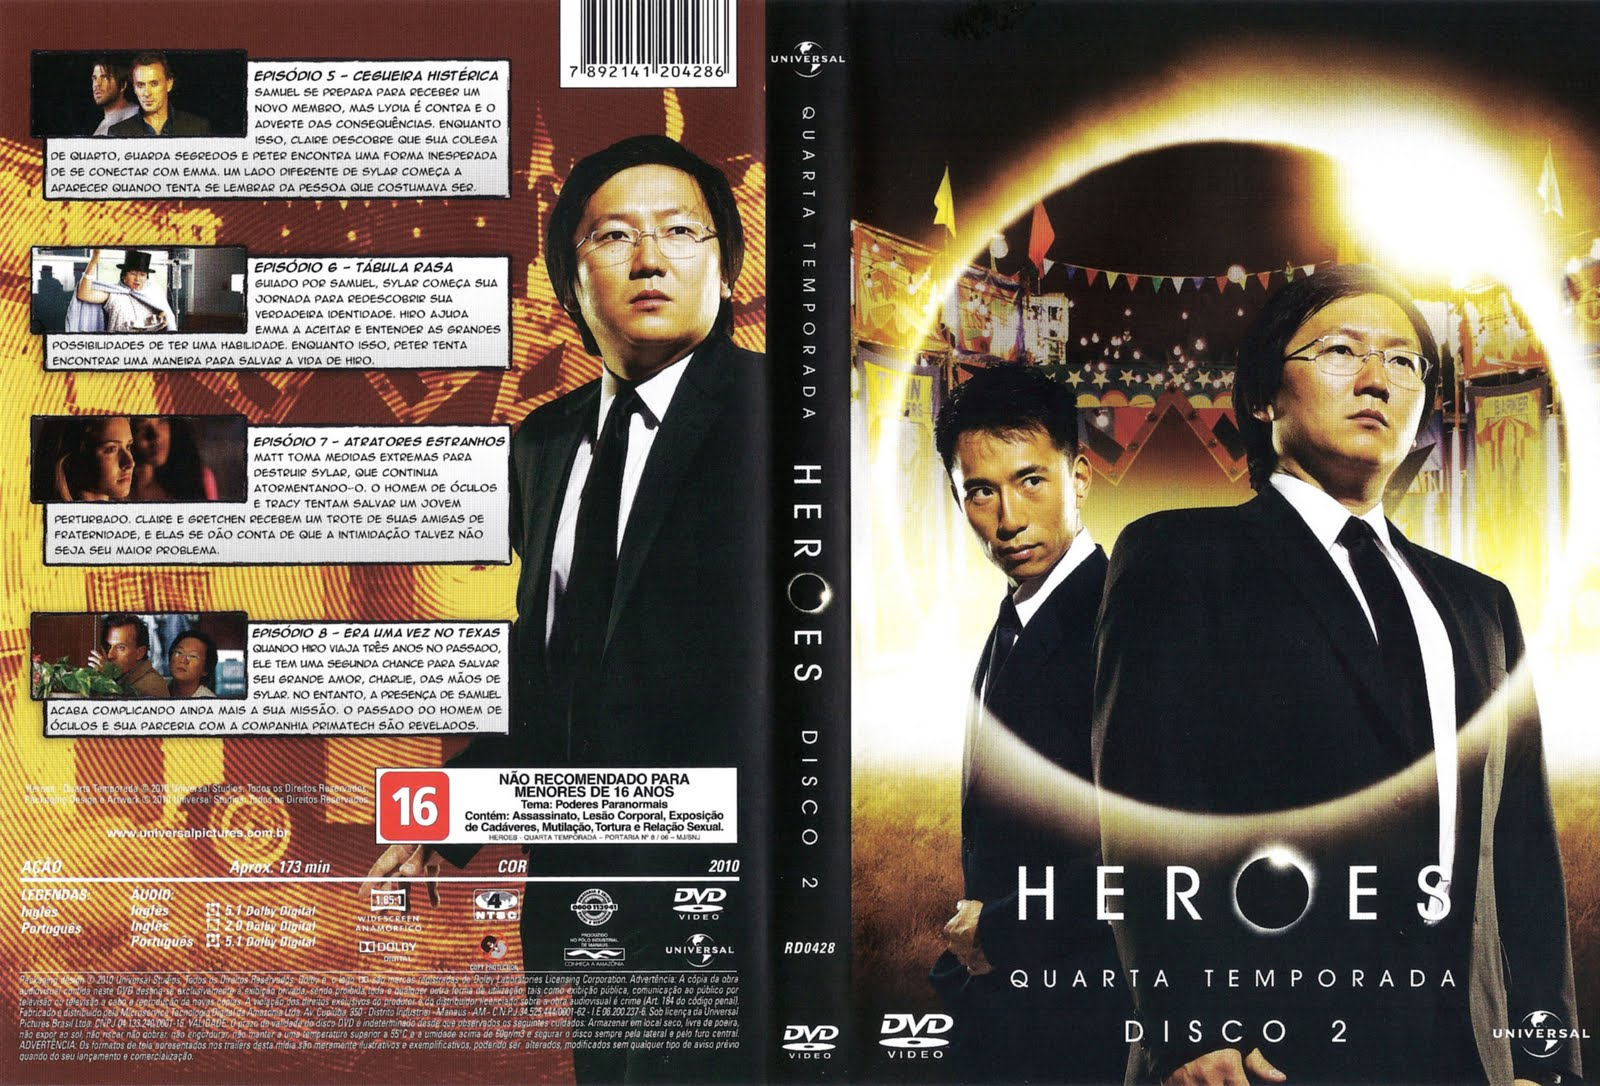 Awesome Heroes Cuarta Temporada Pictures - Casas: Ideas, imágenes y ...